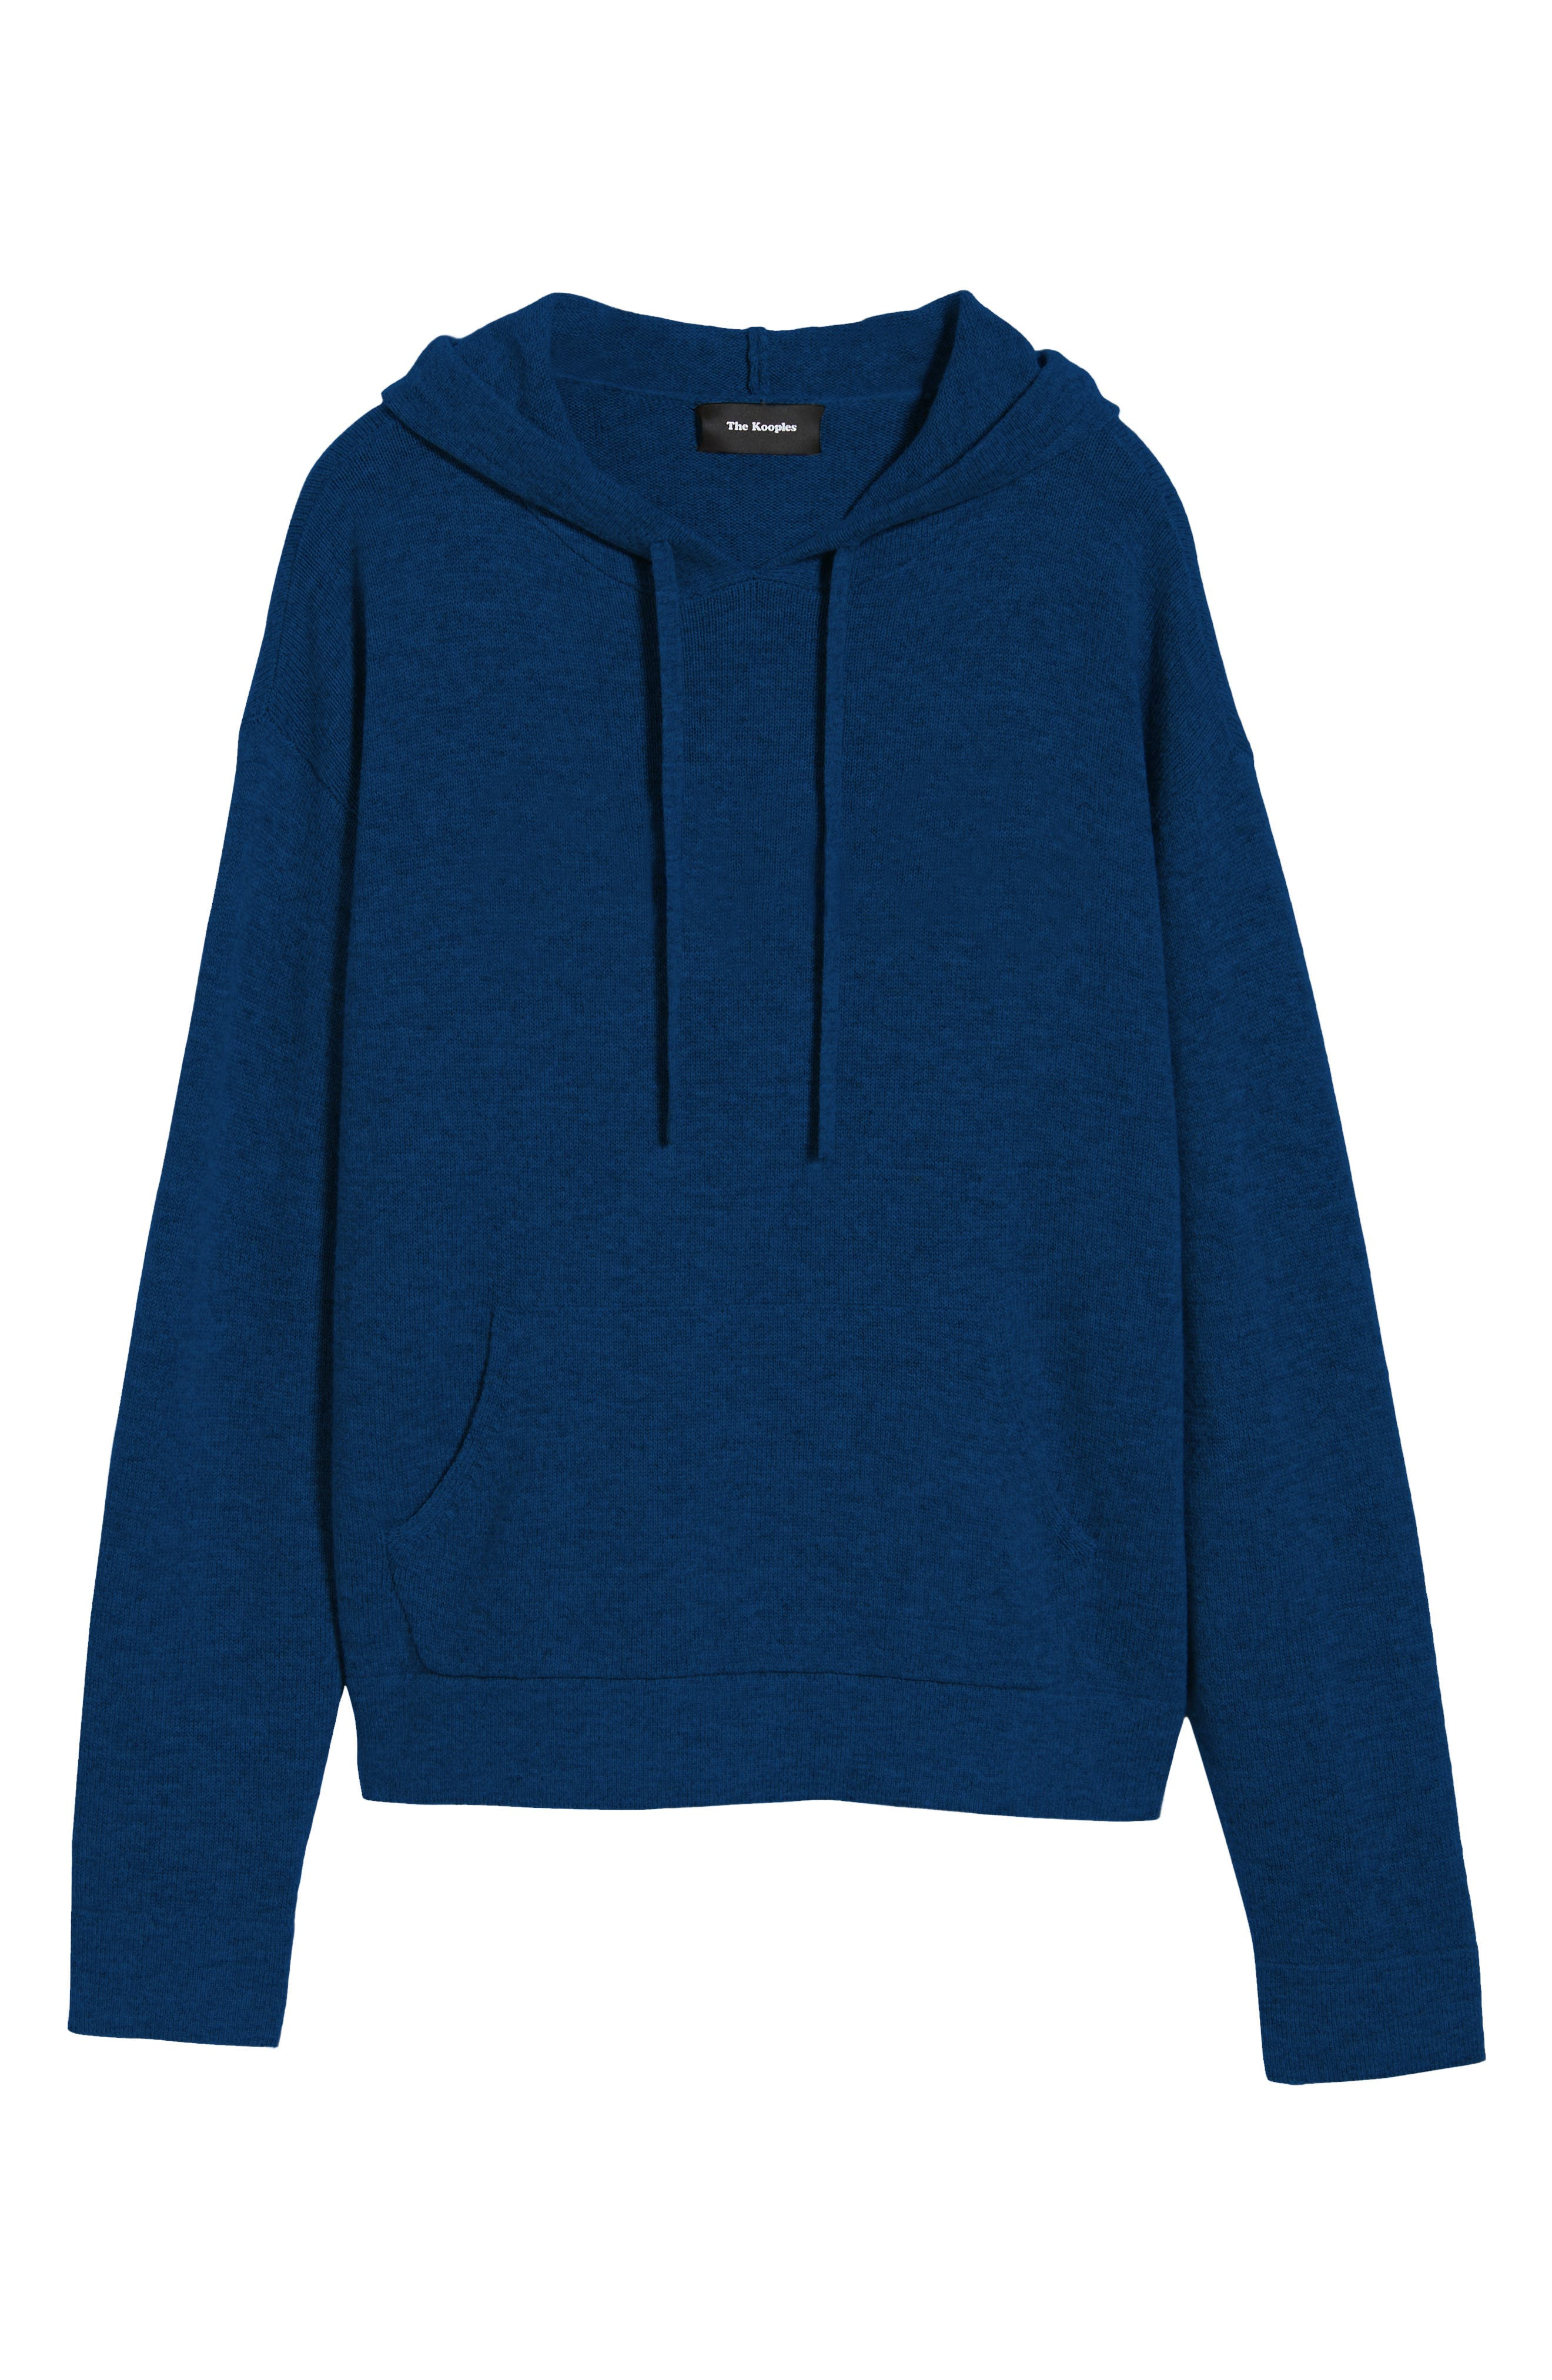 Classic Fit Hoodie Sweater,                             Alternate thumbnail 6, color,                             NAVY